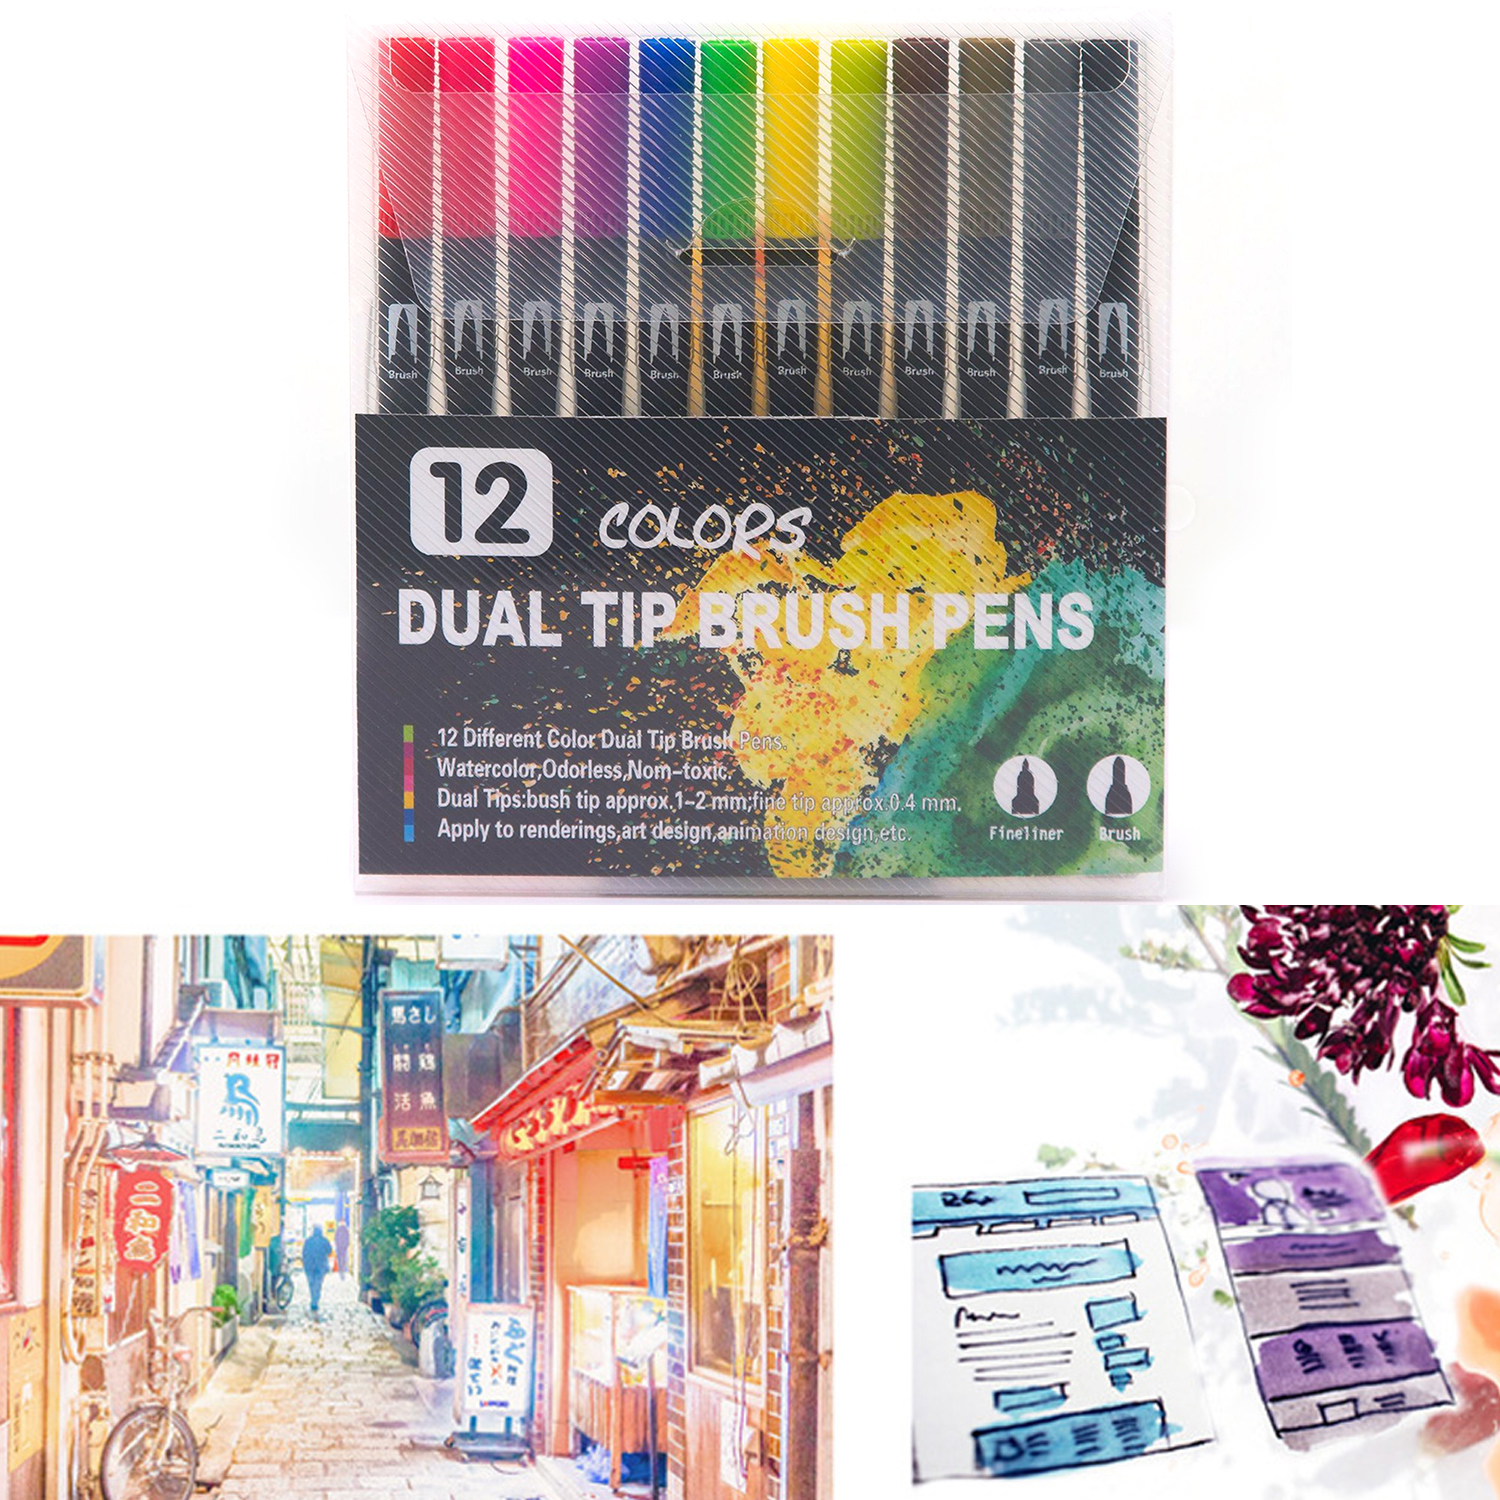 12 Colors Dual Tip Brush Pen Watercolor Drawing Painting Marker For Kids Adults Art Doodle Coloring Books Calligraphy